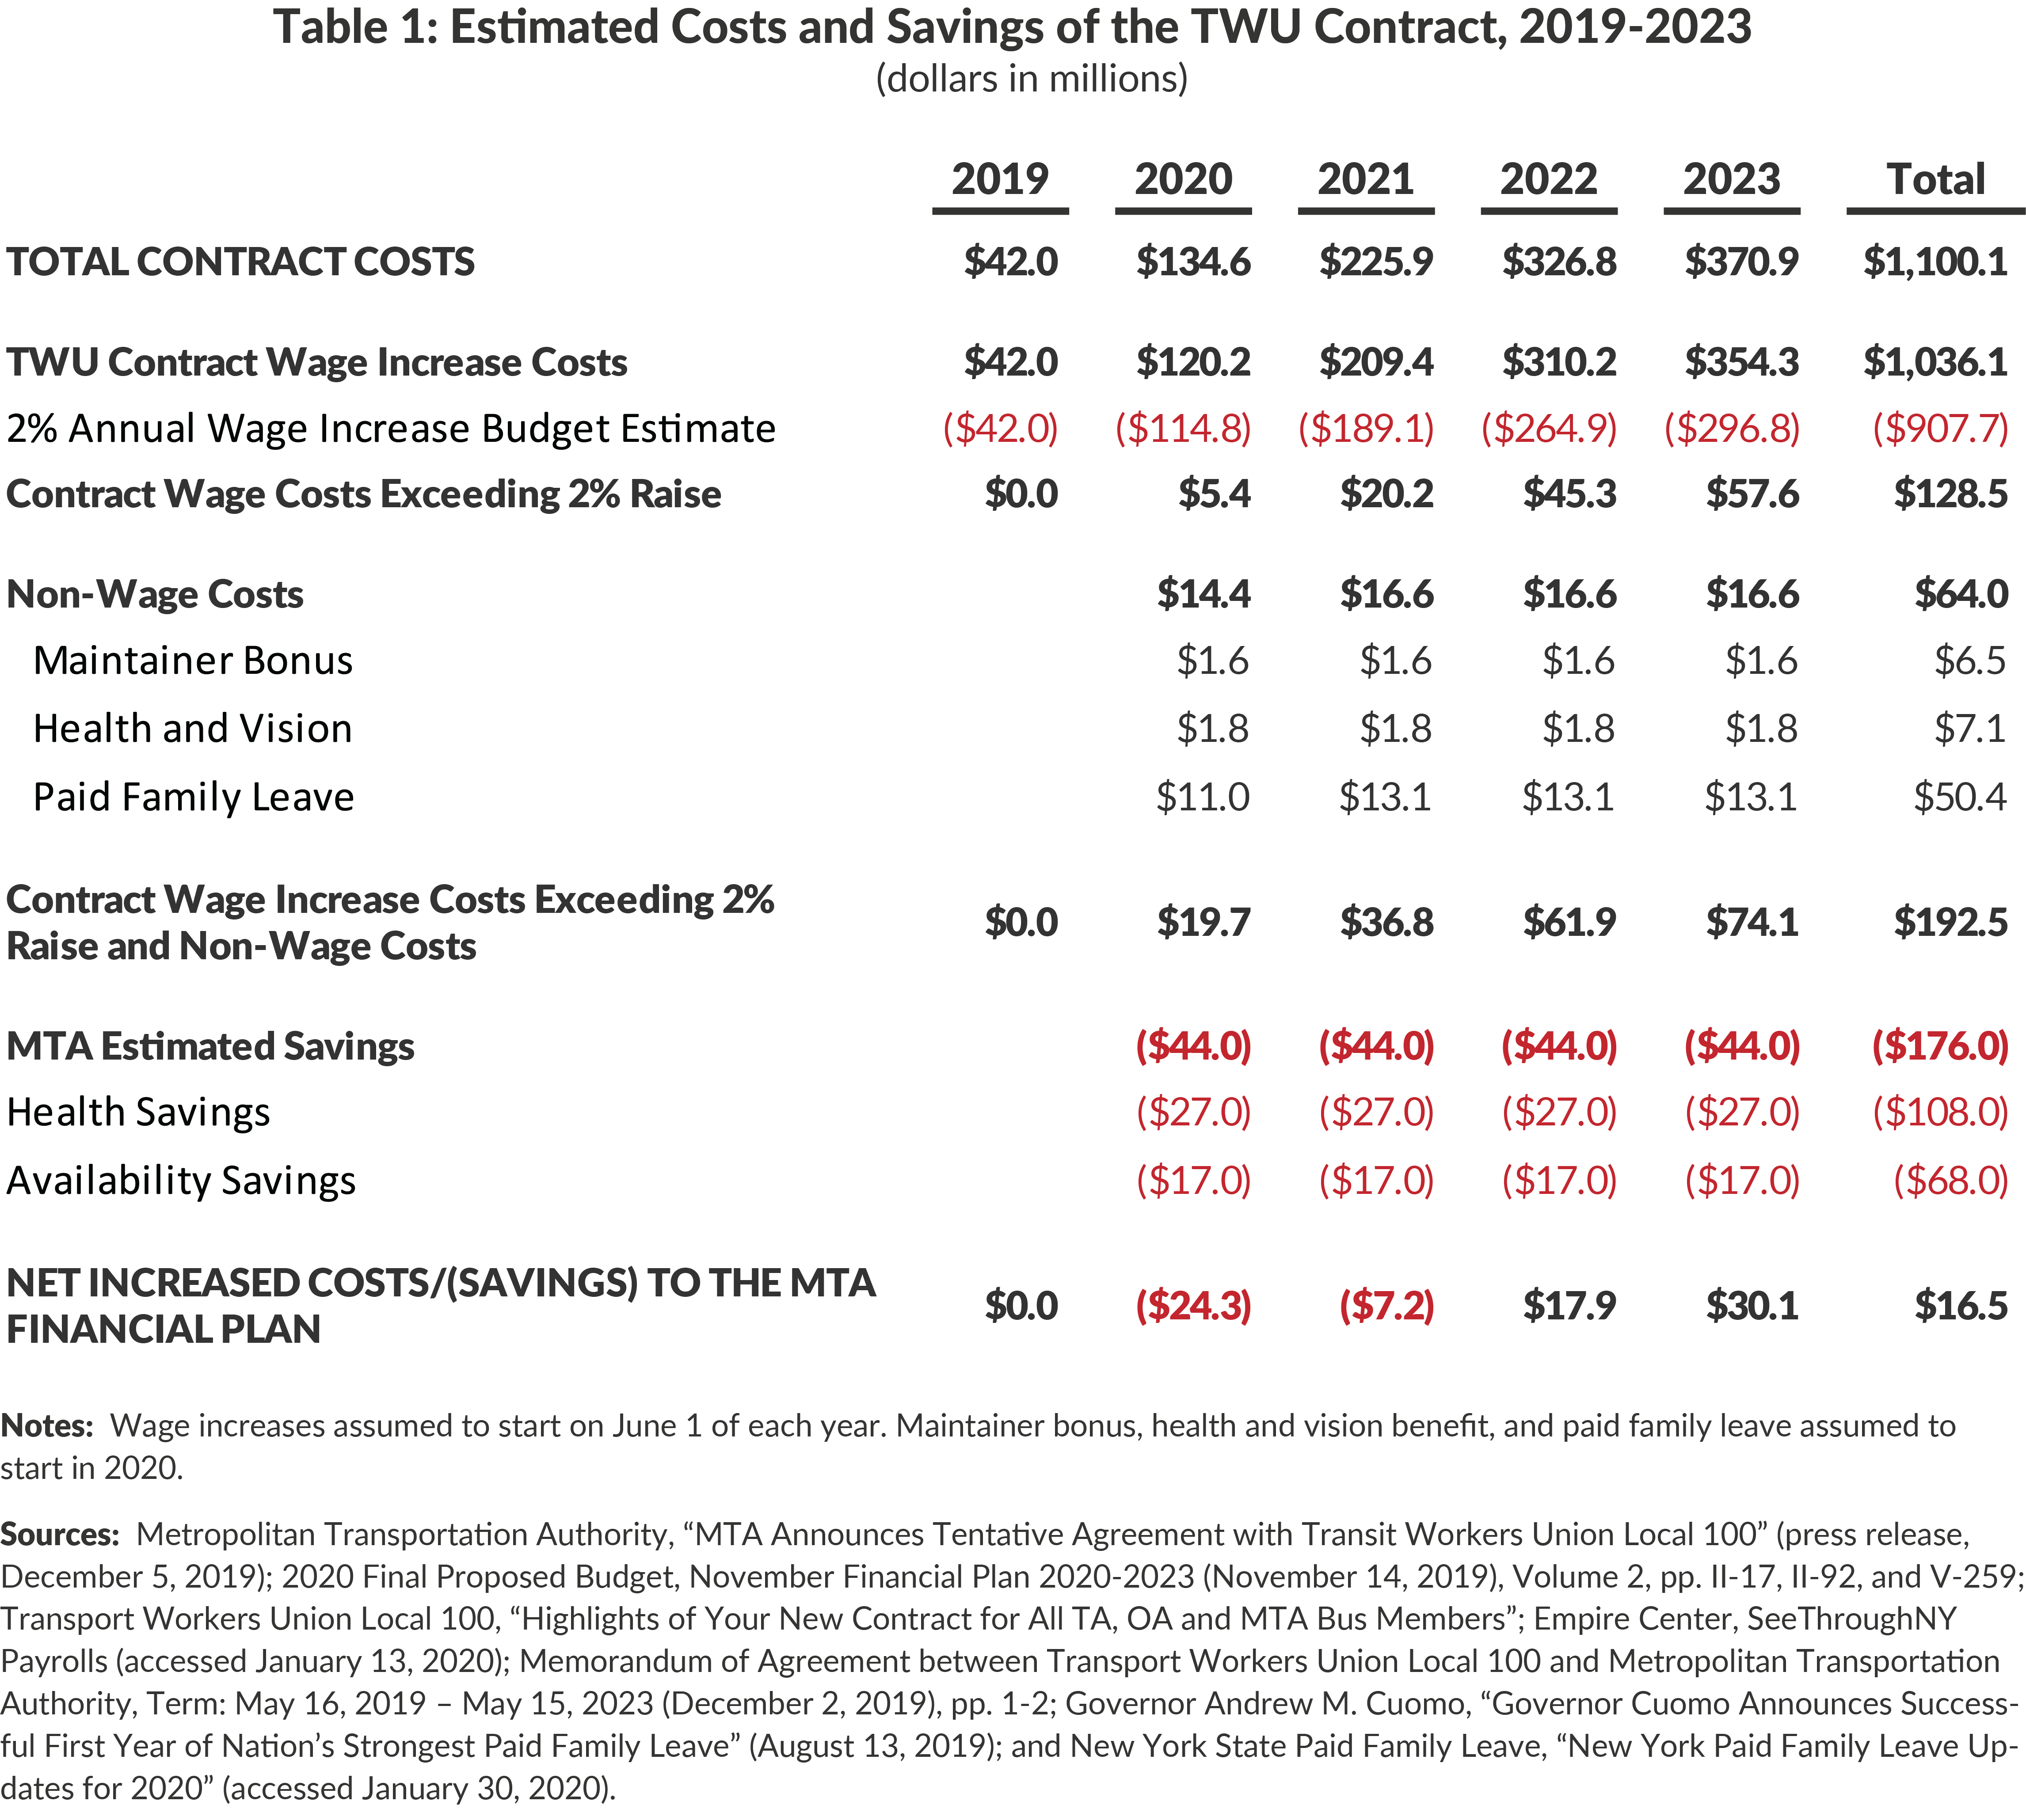 Table 1: Estimated Costs and Savings of the TWU Contract, 2019-2023